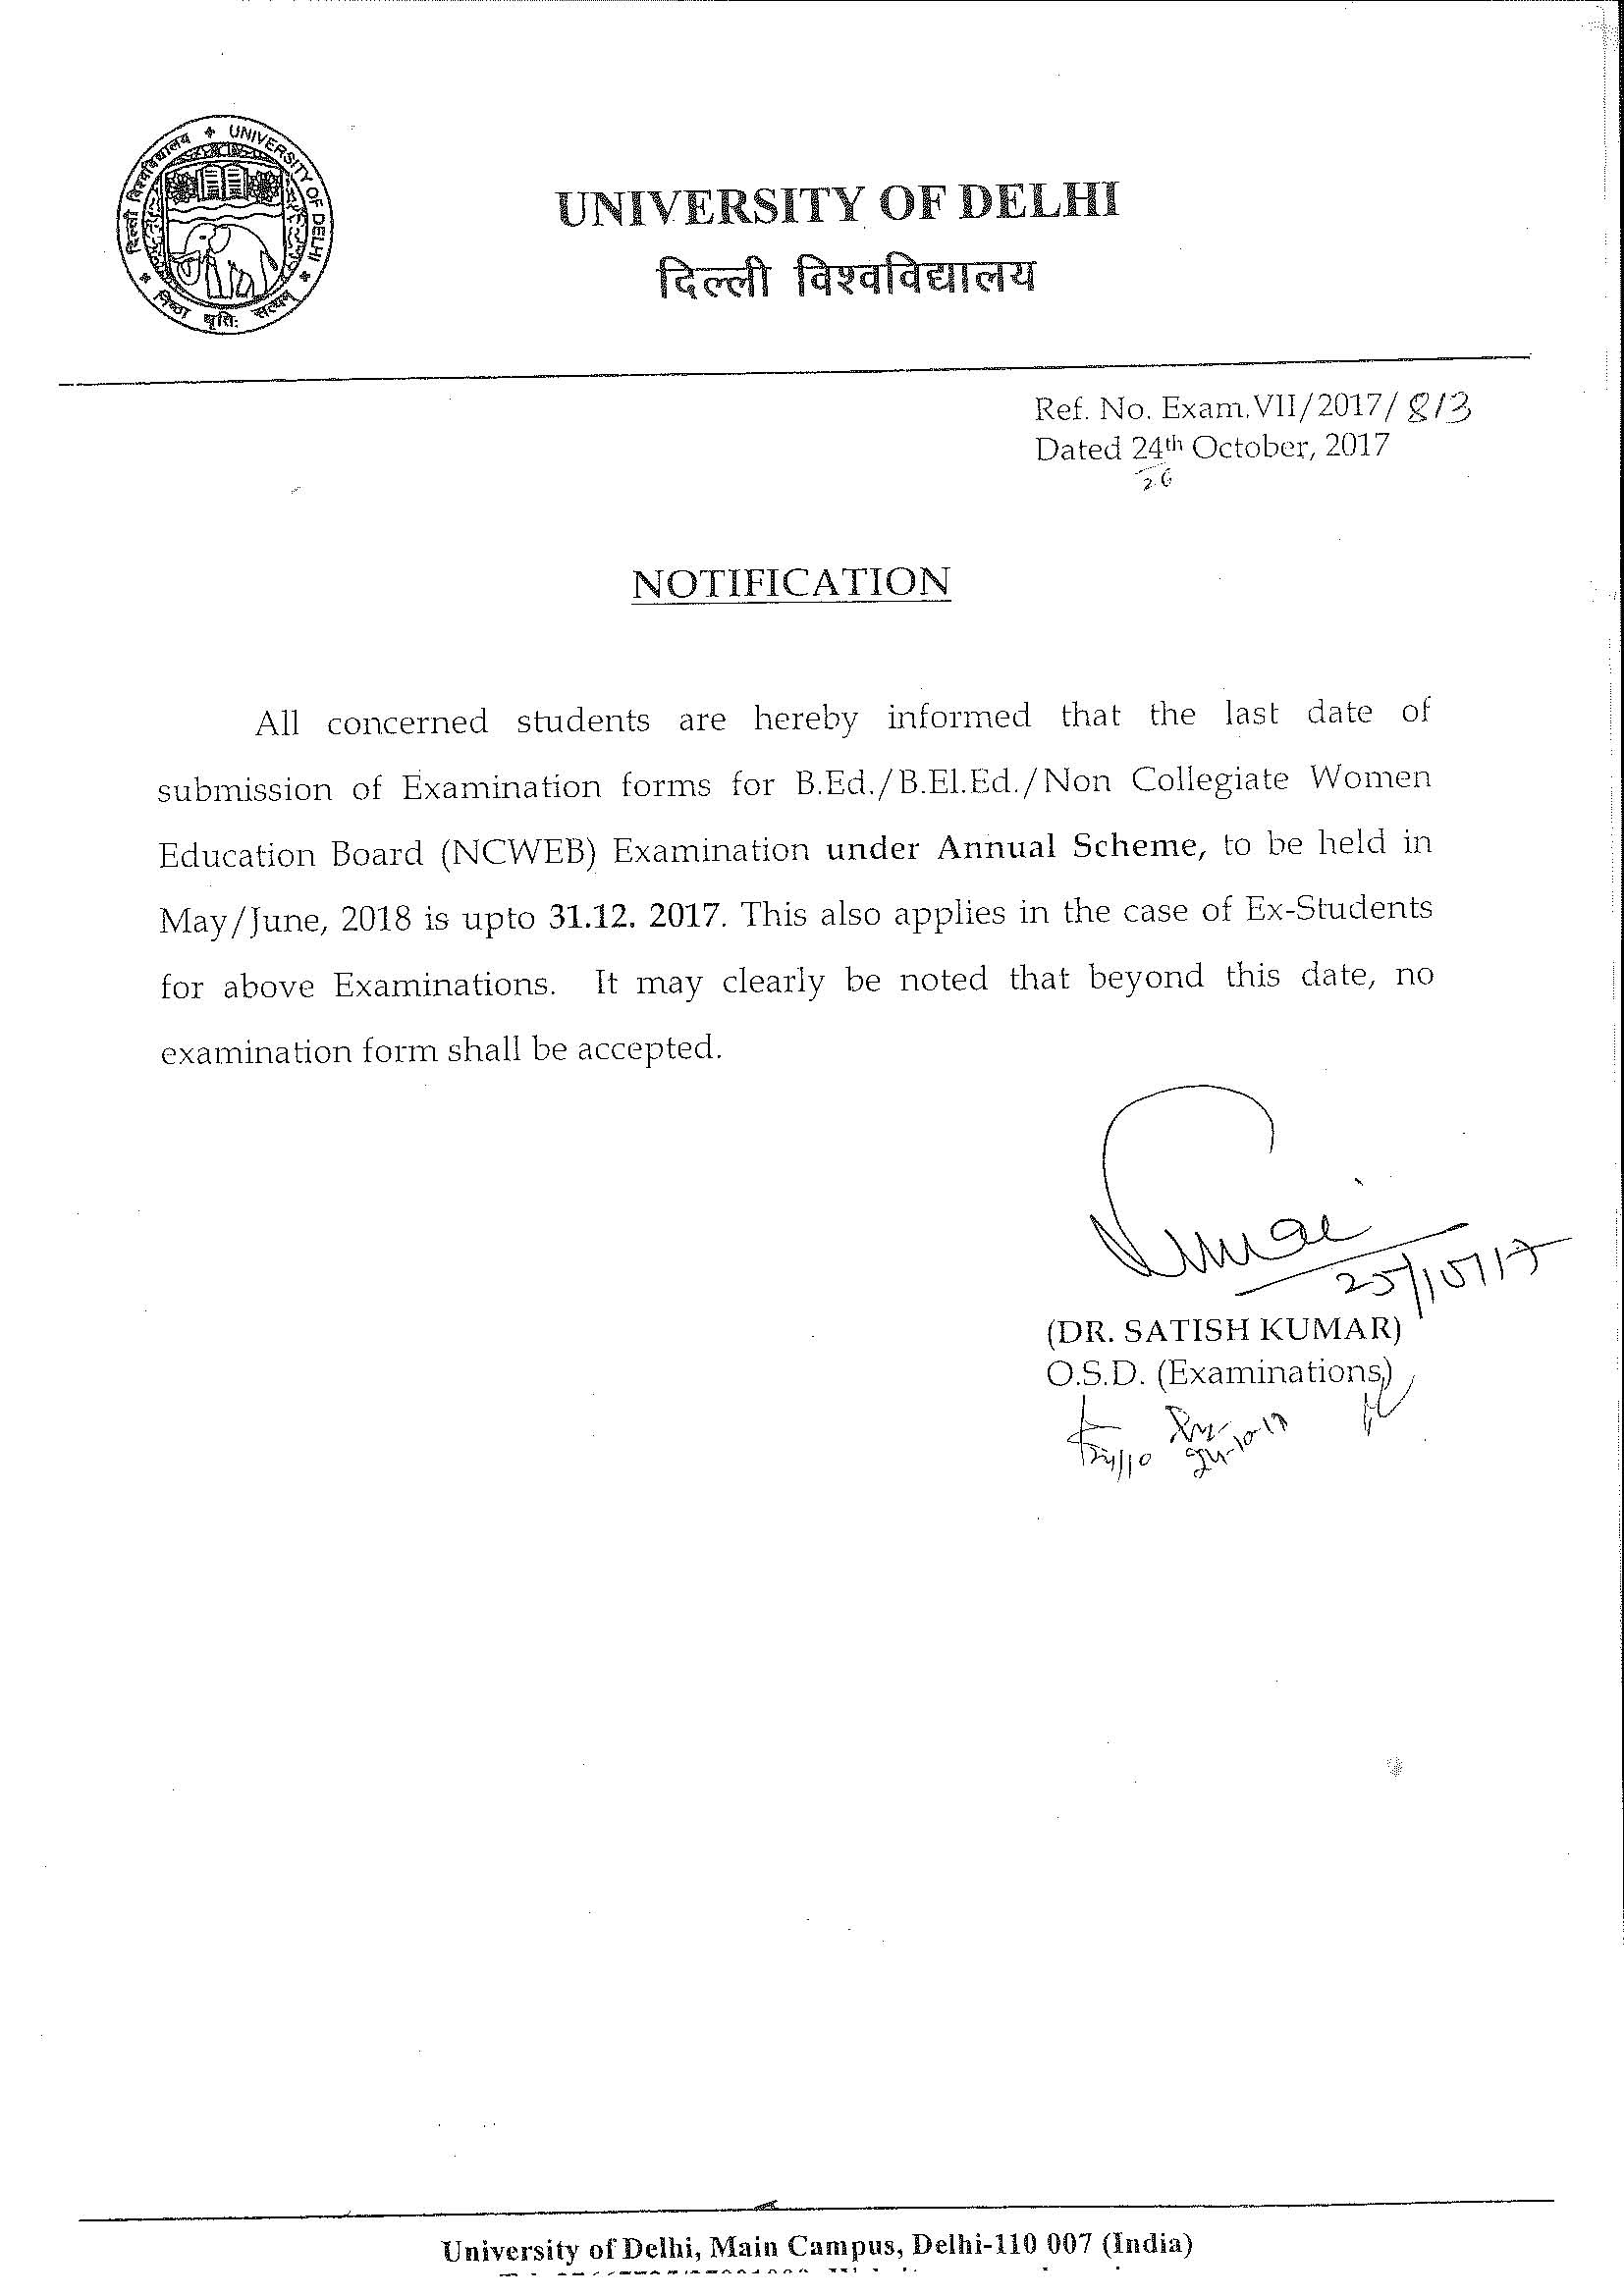 Delhi University: Notification for last date for submission of ... on